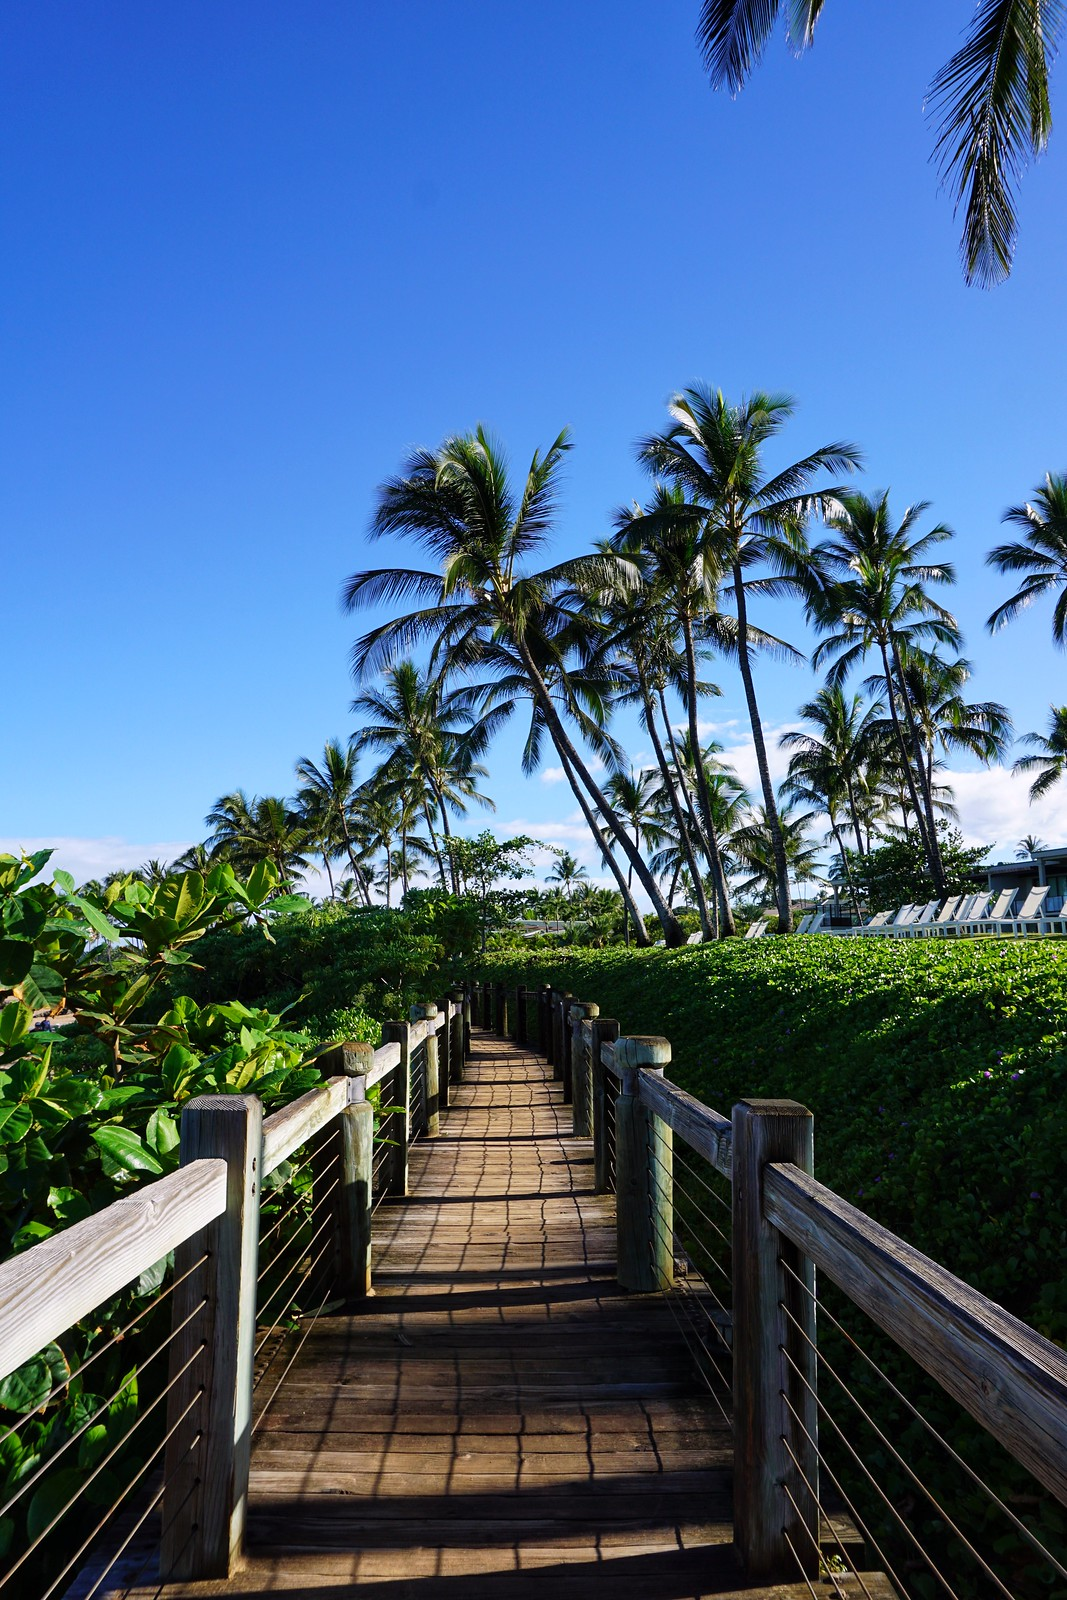 Wailea Beach Path Maui Hawaii Things to do on Maui